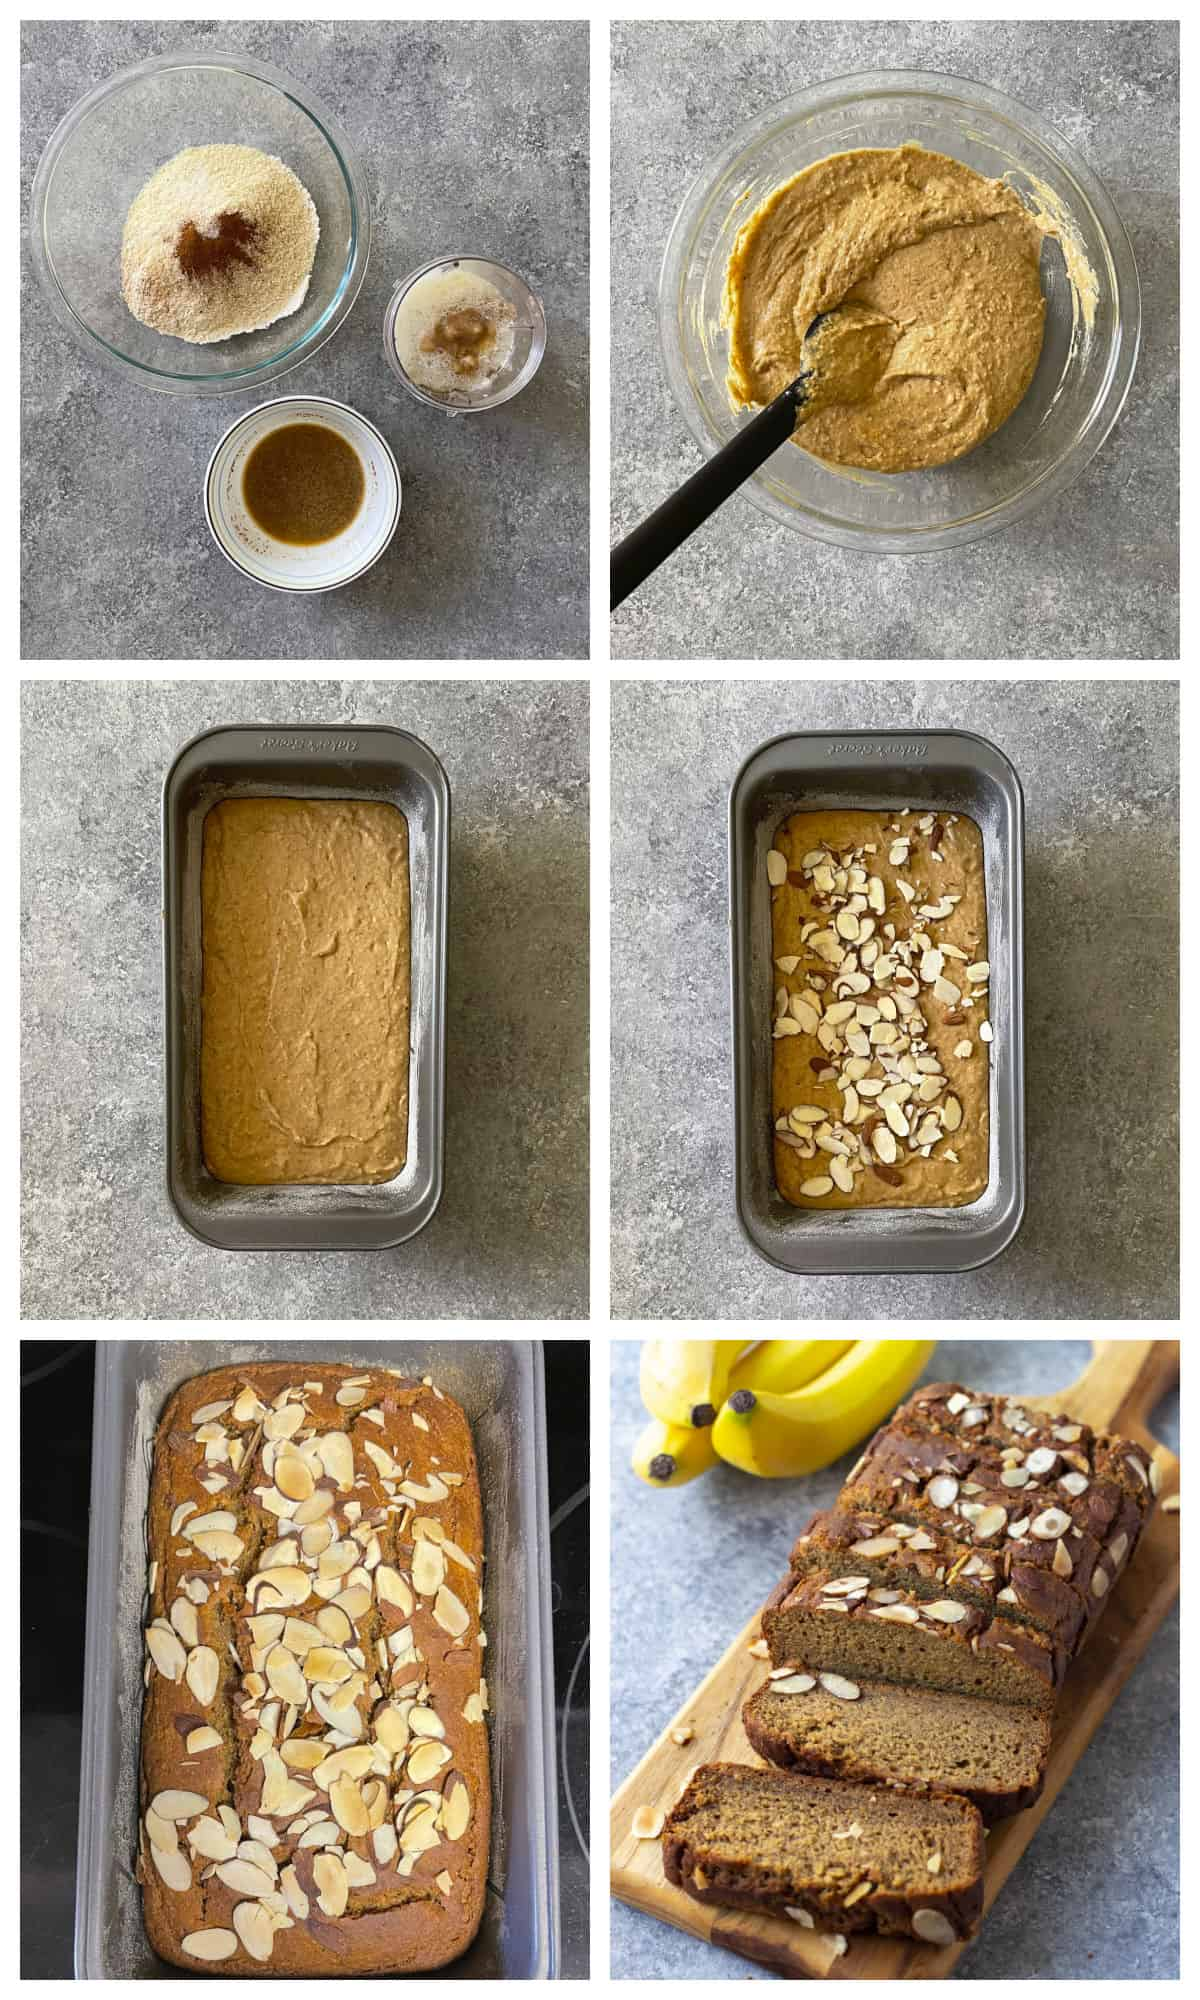 Step by step making of banana bread at home